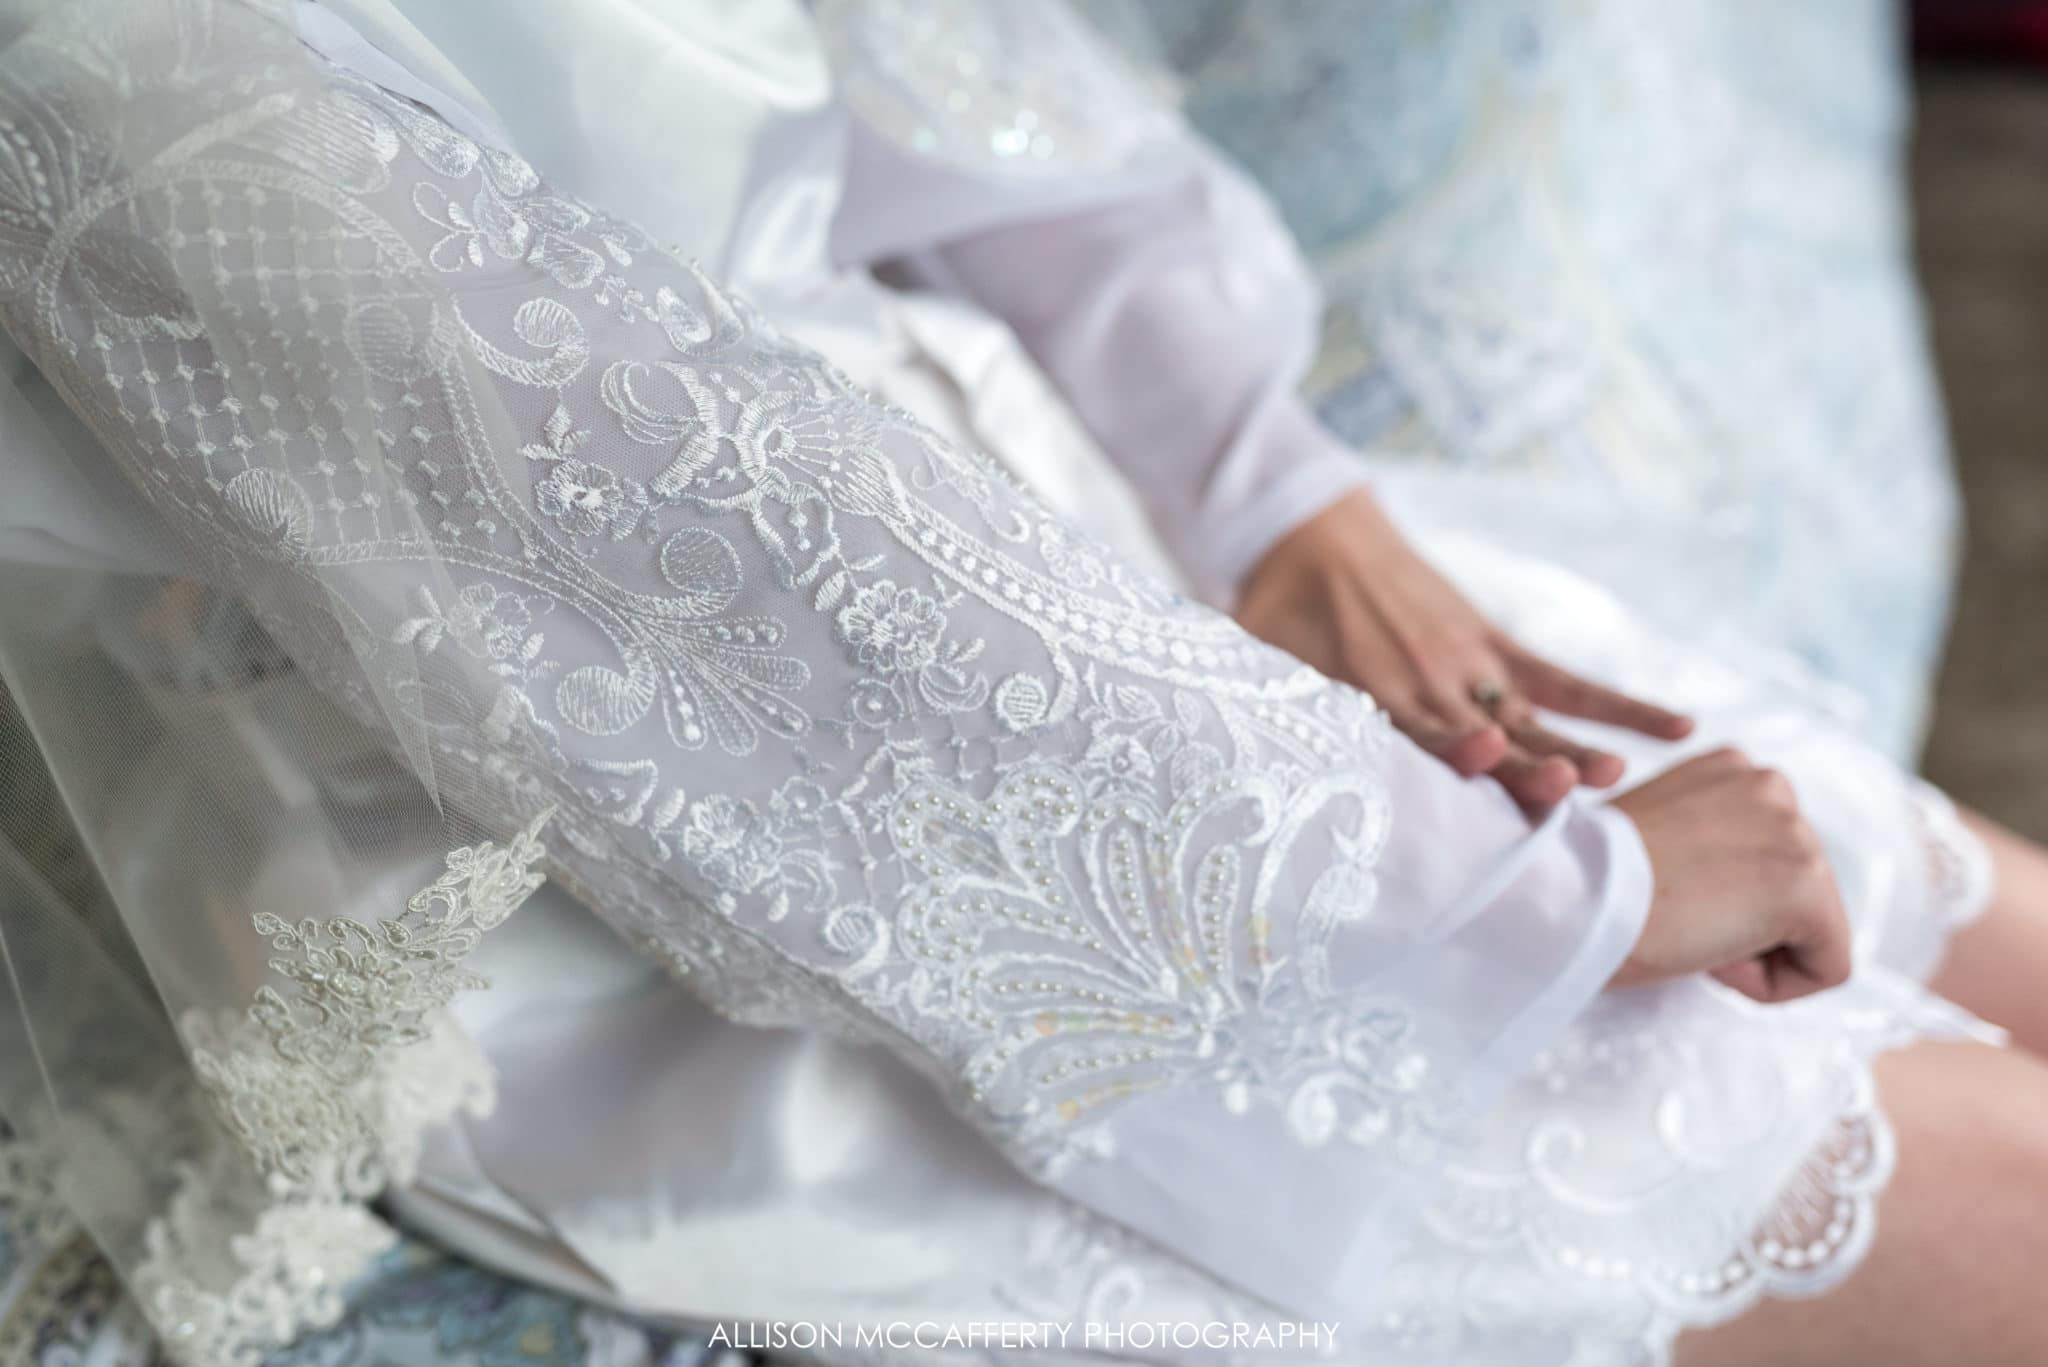 Bridal robe made from mother's wedding dress